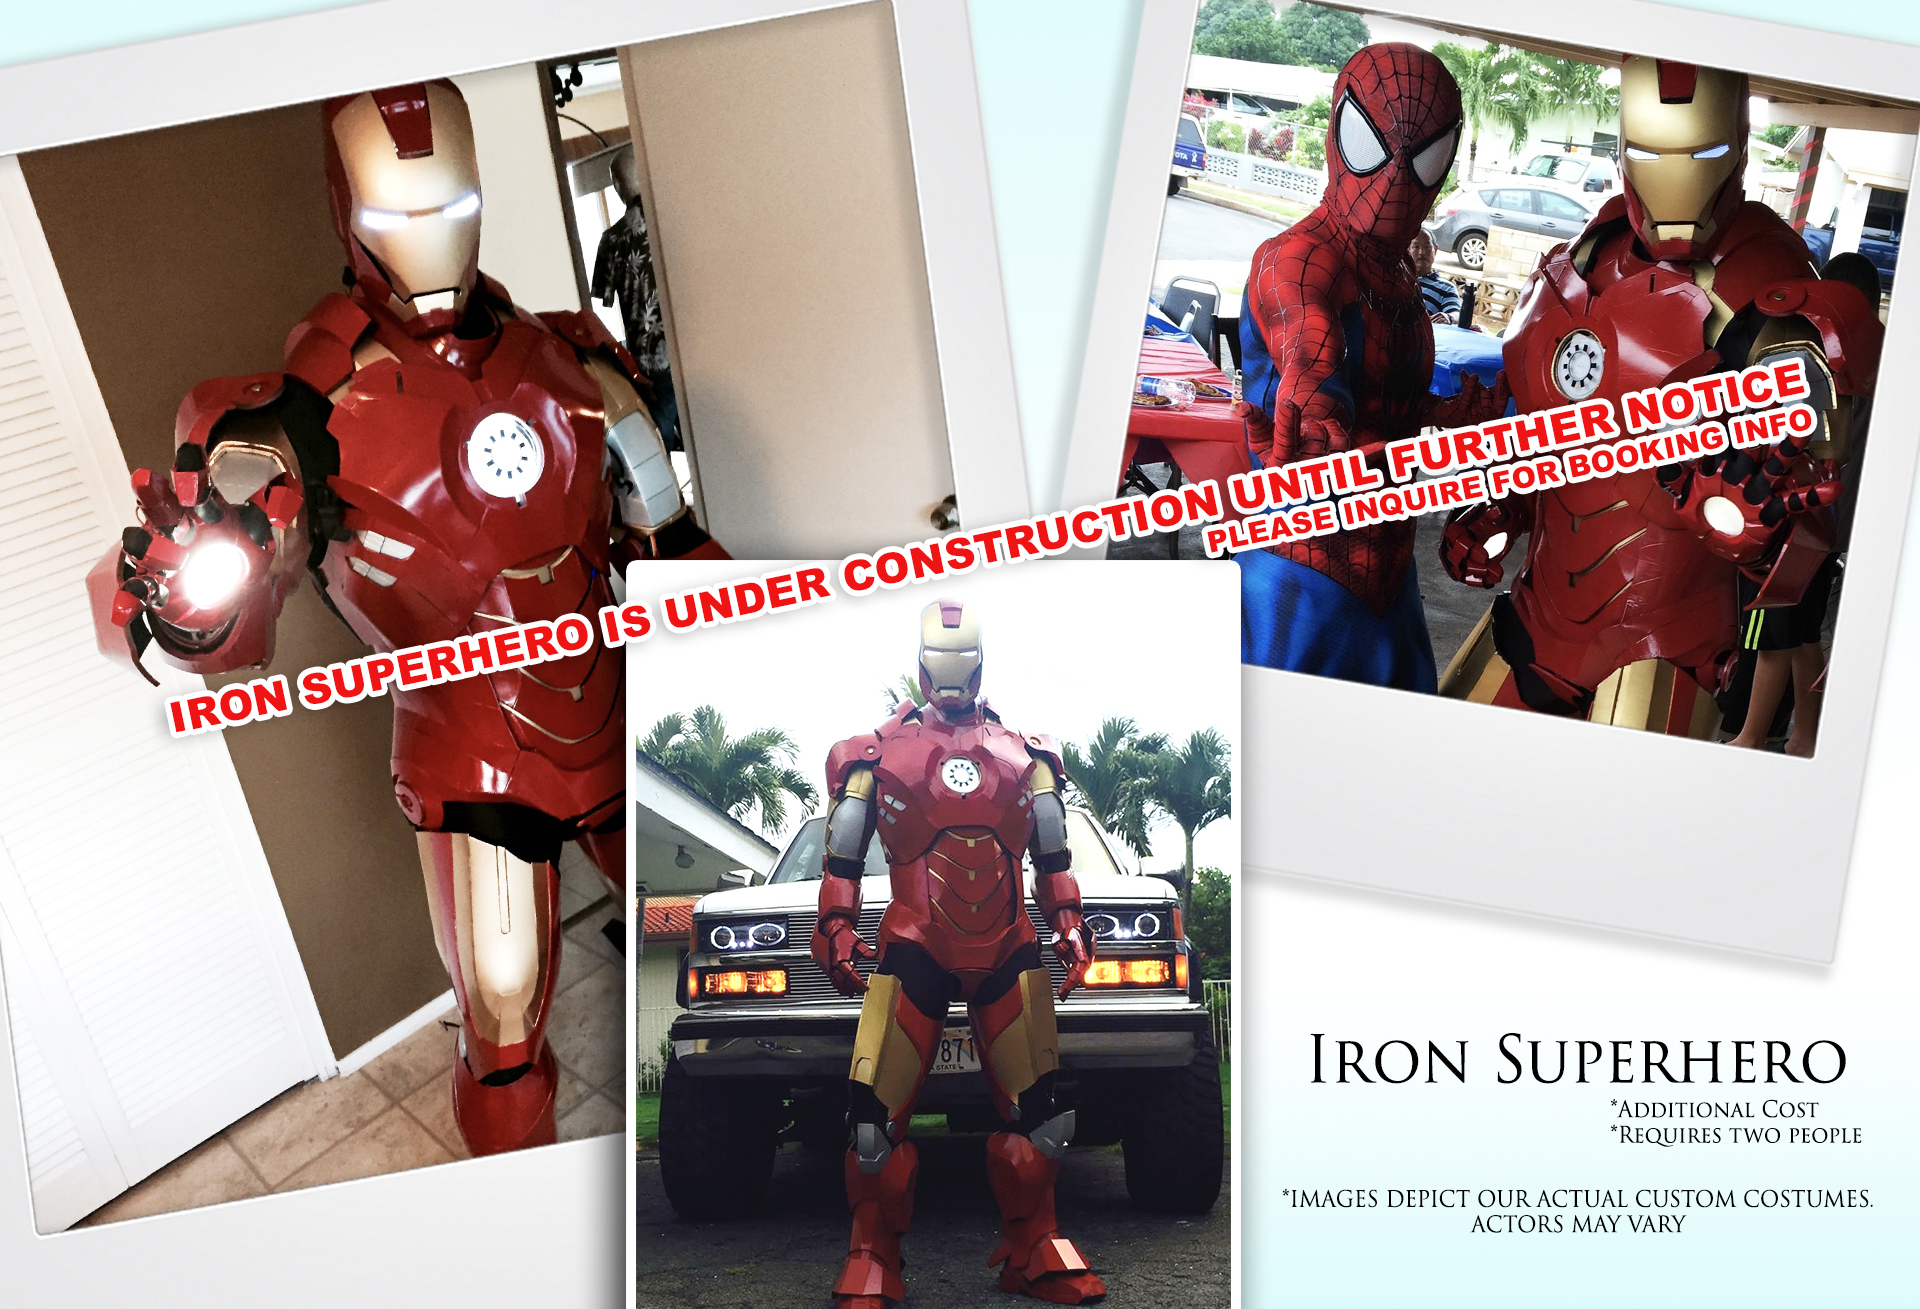 Iron Superhero (Under Construction)